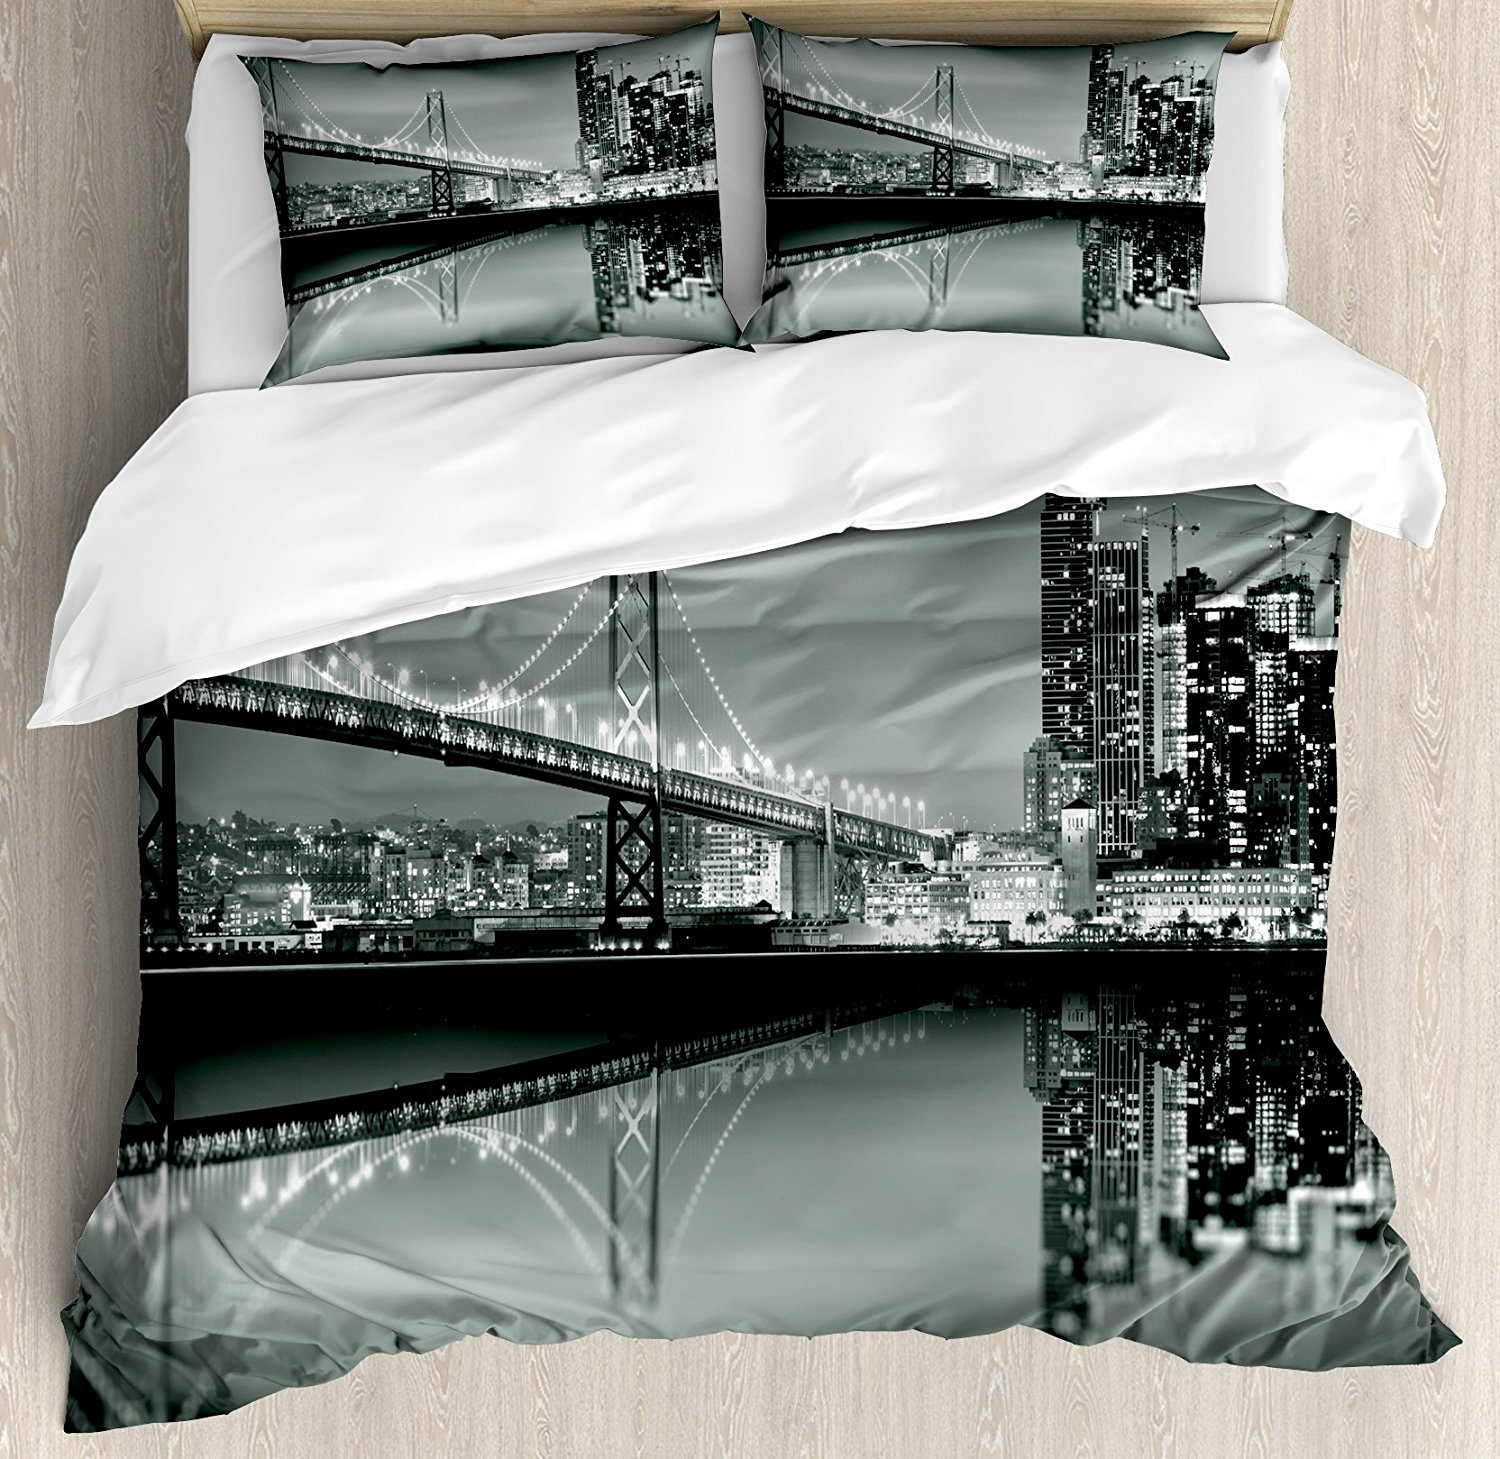 Decorations Duvet Cover Set, San Francisco Bay Bridge Metropolis Panorama Skyscrapers, 4 Piece Bedding Set